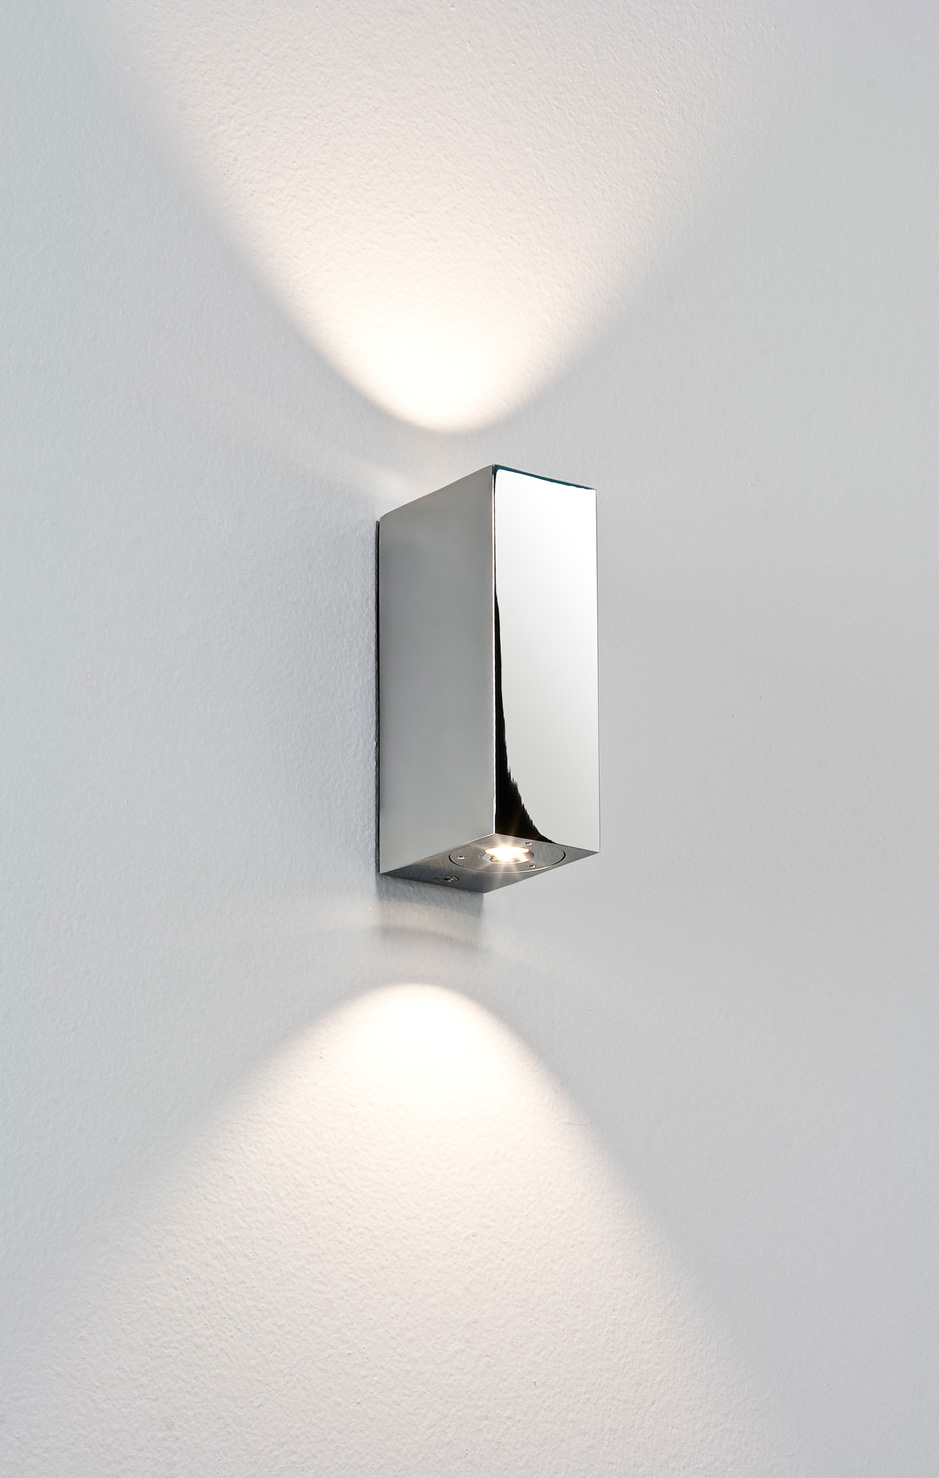 ASTRO Bloc 0829 bathroom LED up down wall light 2 X 1W 3000K warmwhite chrome Thumbnail 1